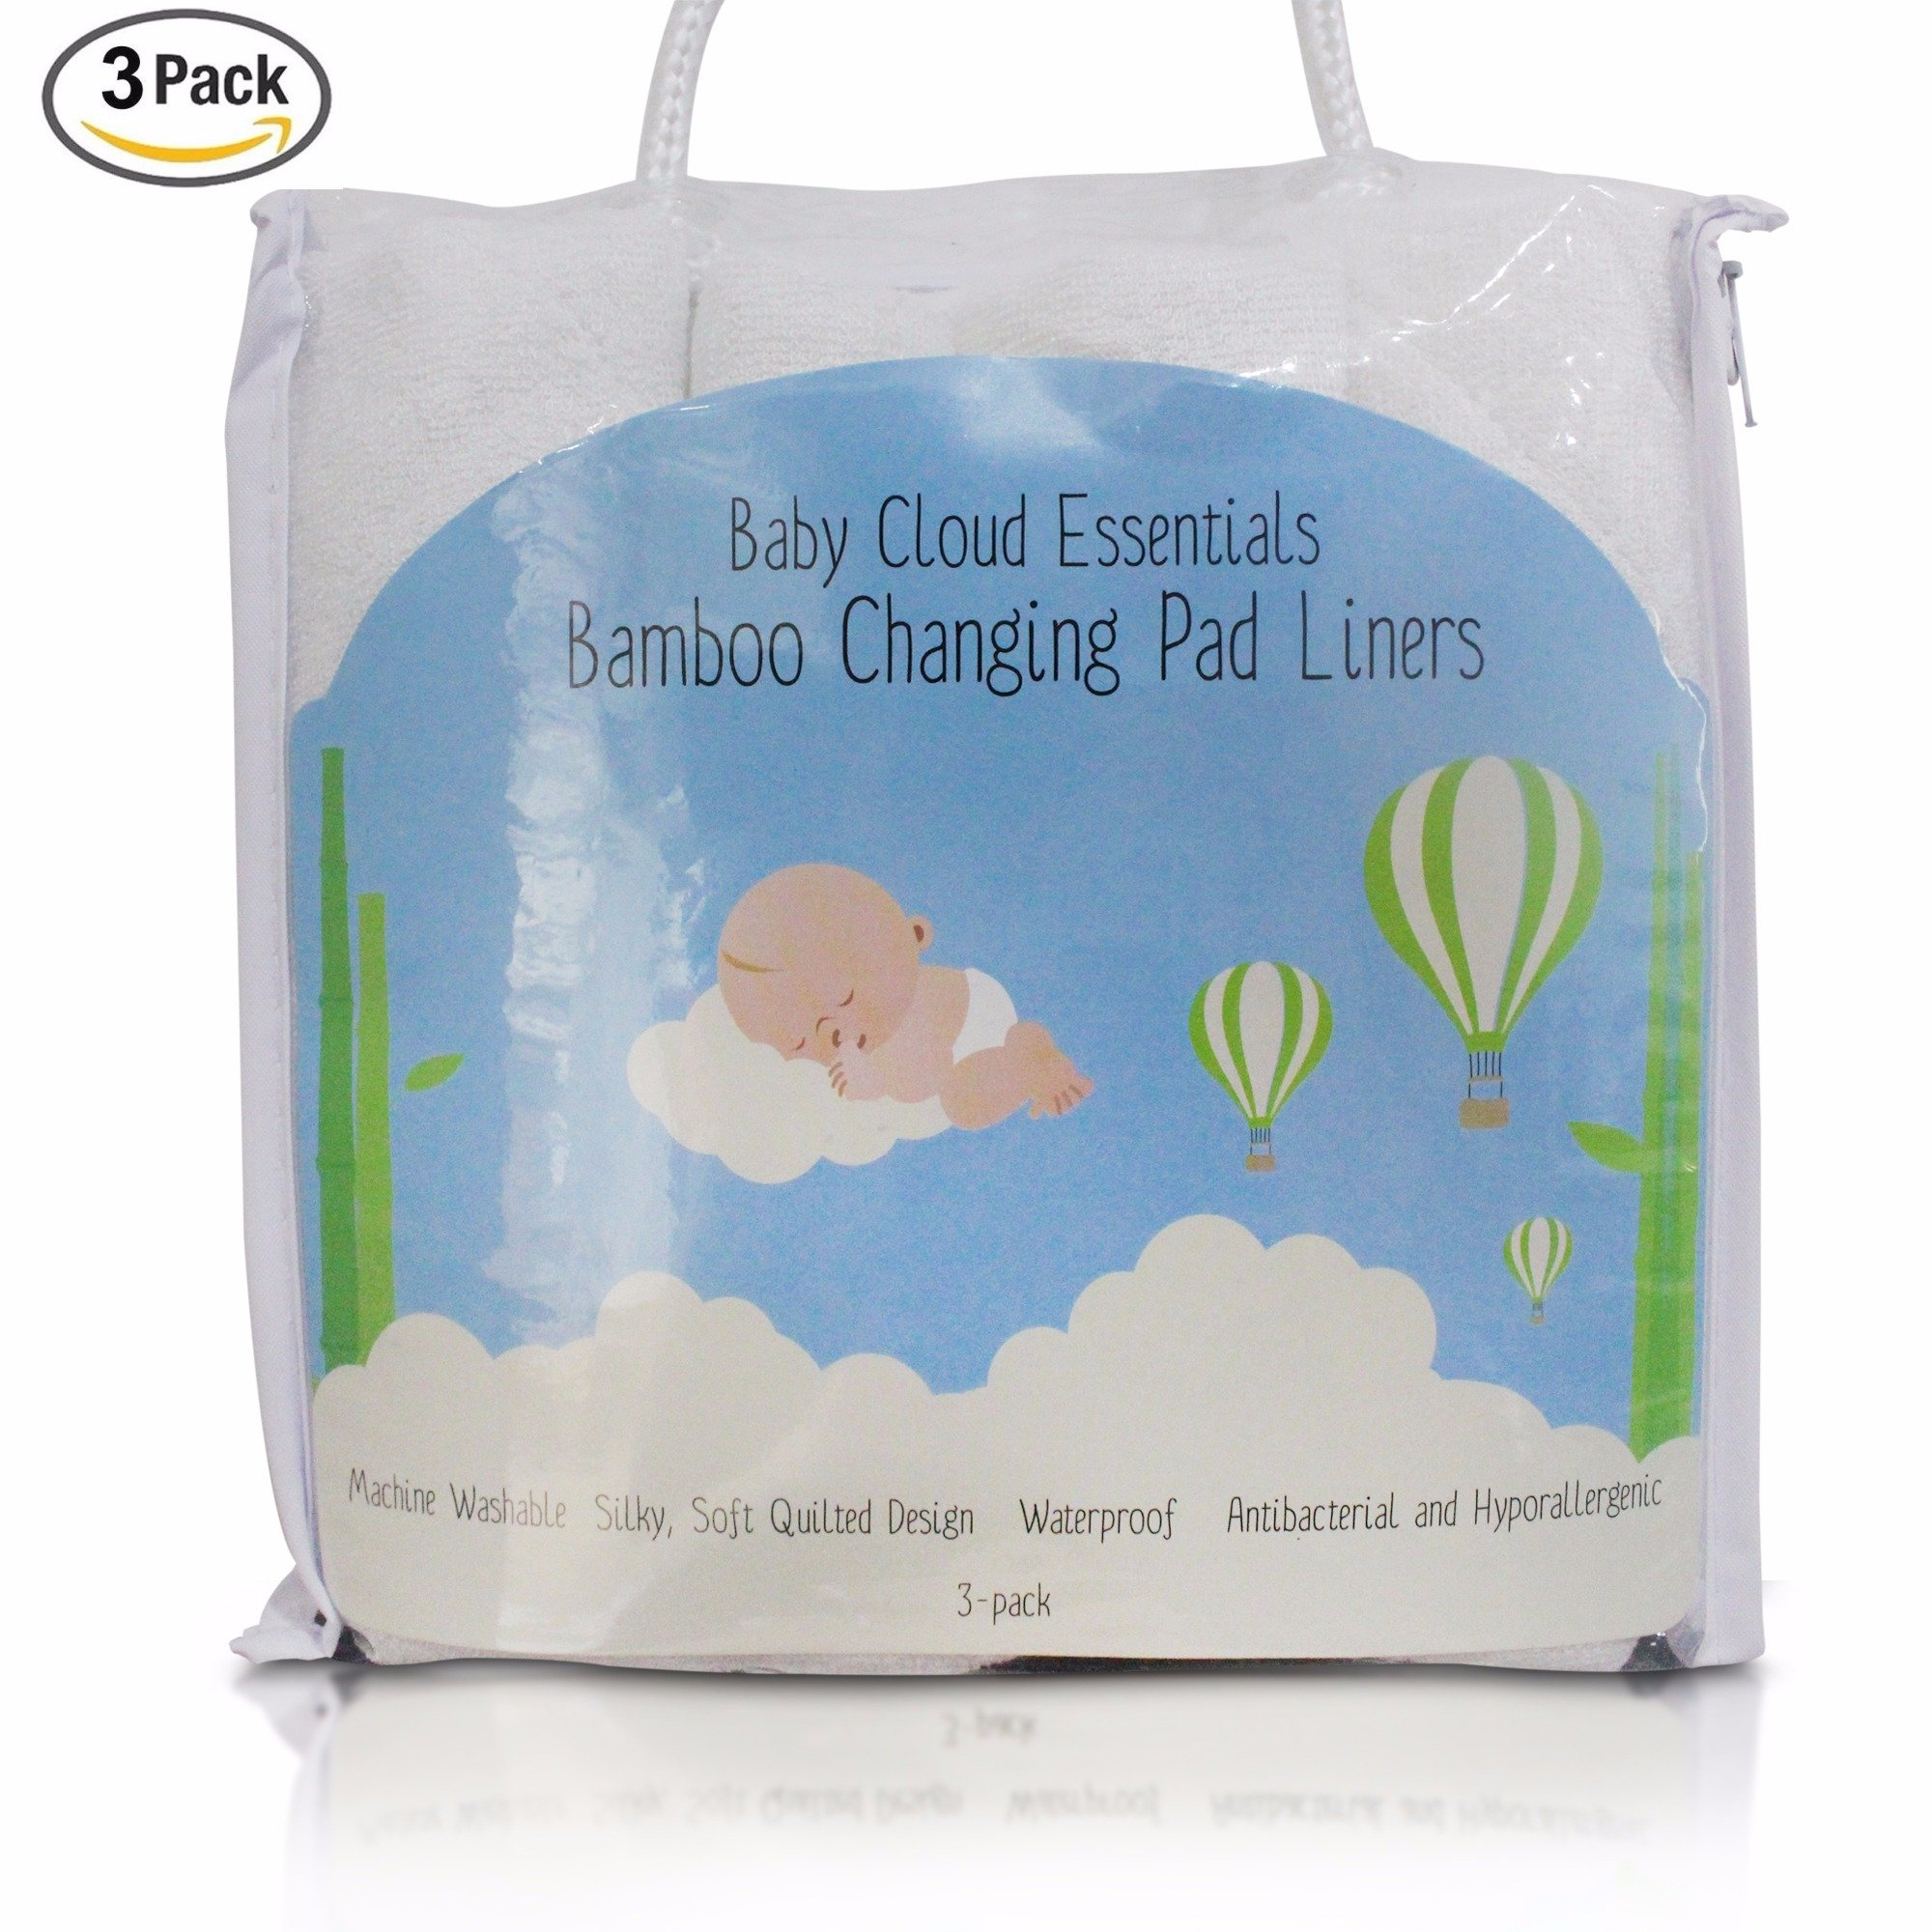 Final Inventory, 1/2 Price, Baby Changing Pad Liners, 4-Layered Soft Bamboo Fabric, Hypoallergenic And Antibacterial, Non-Slip And Absorbent Waterproof Mat, Machine Washable, With Storing Bag